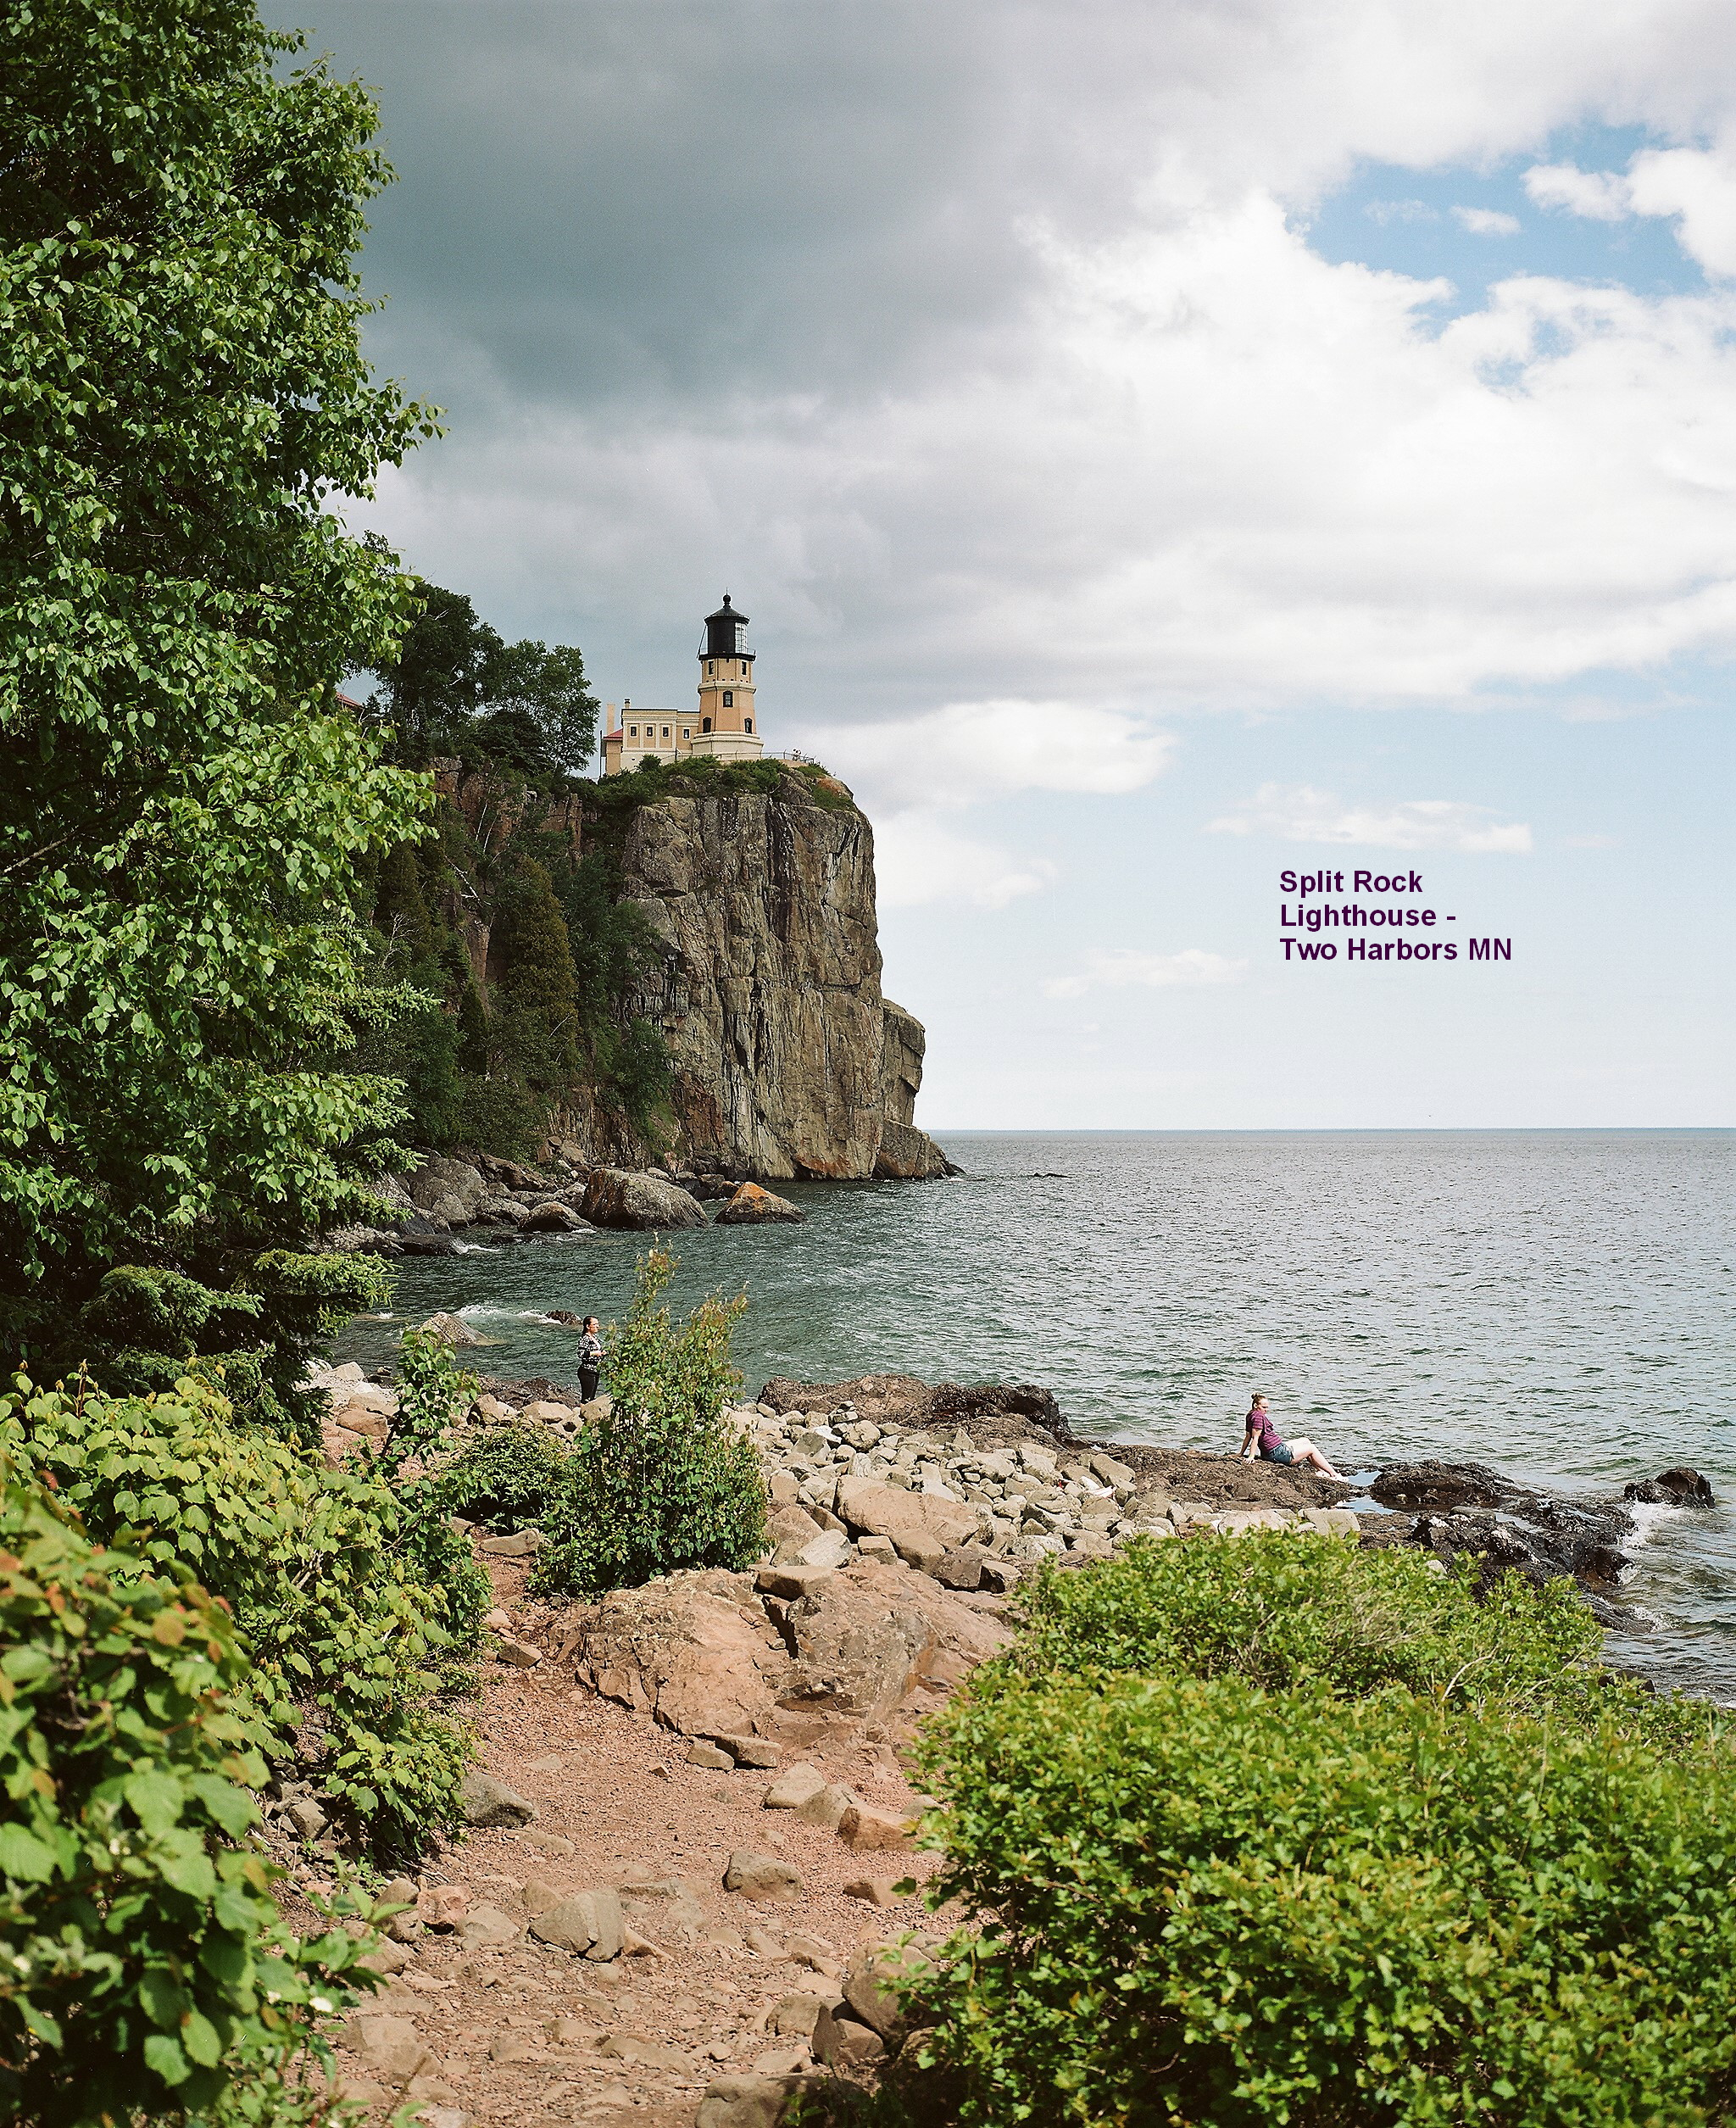 split rock lighthouse two harbors mn author wil wilson jerry